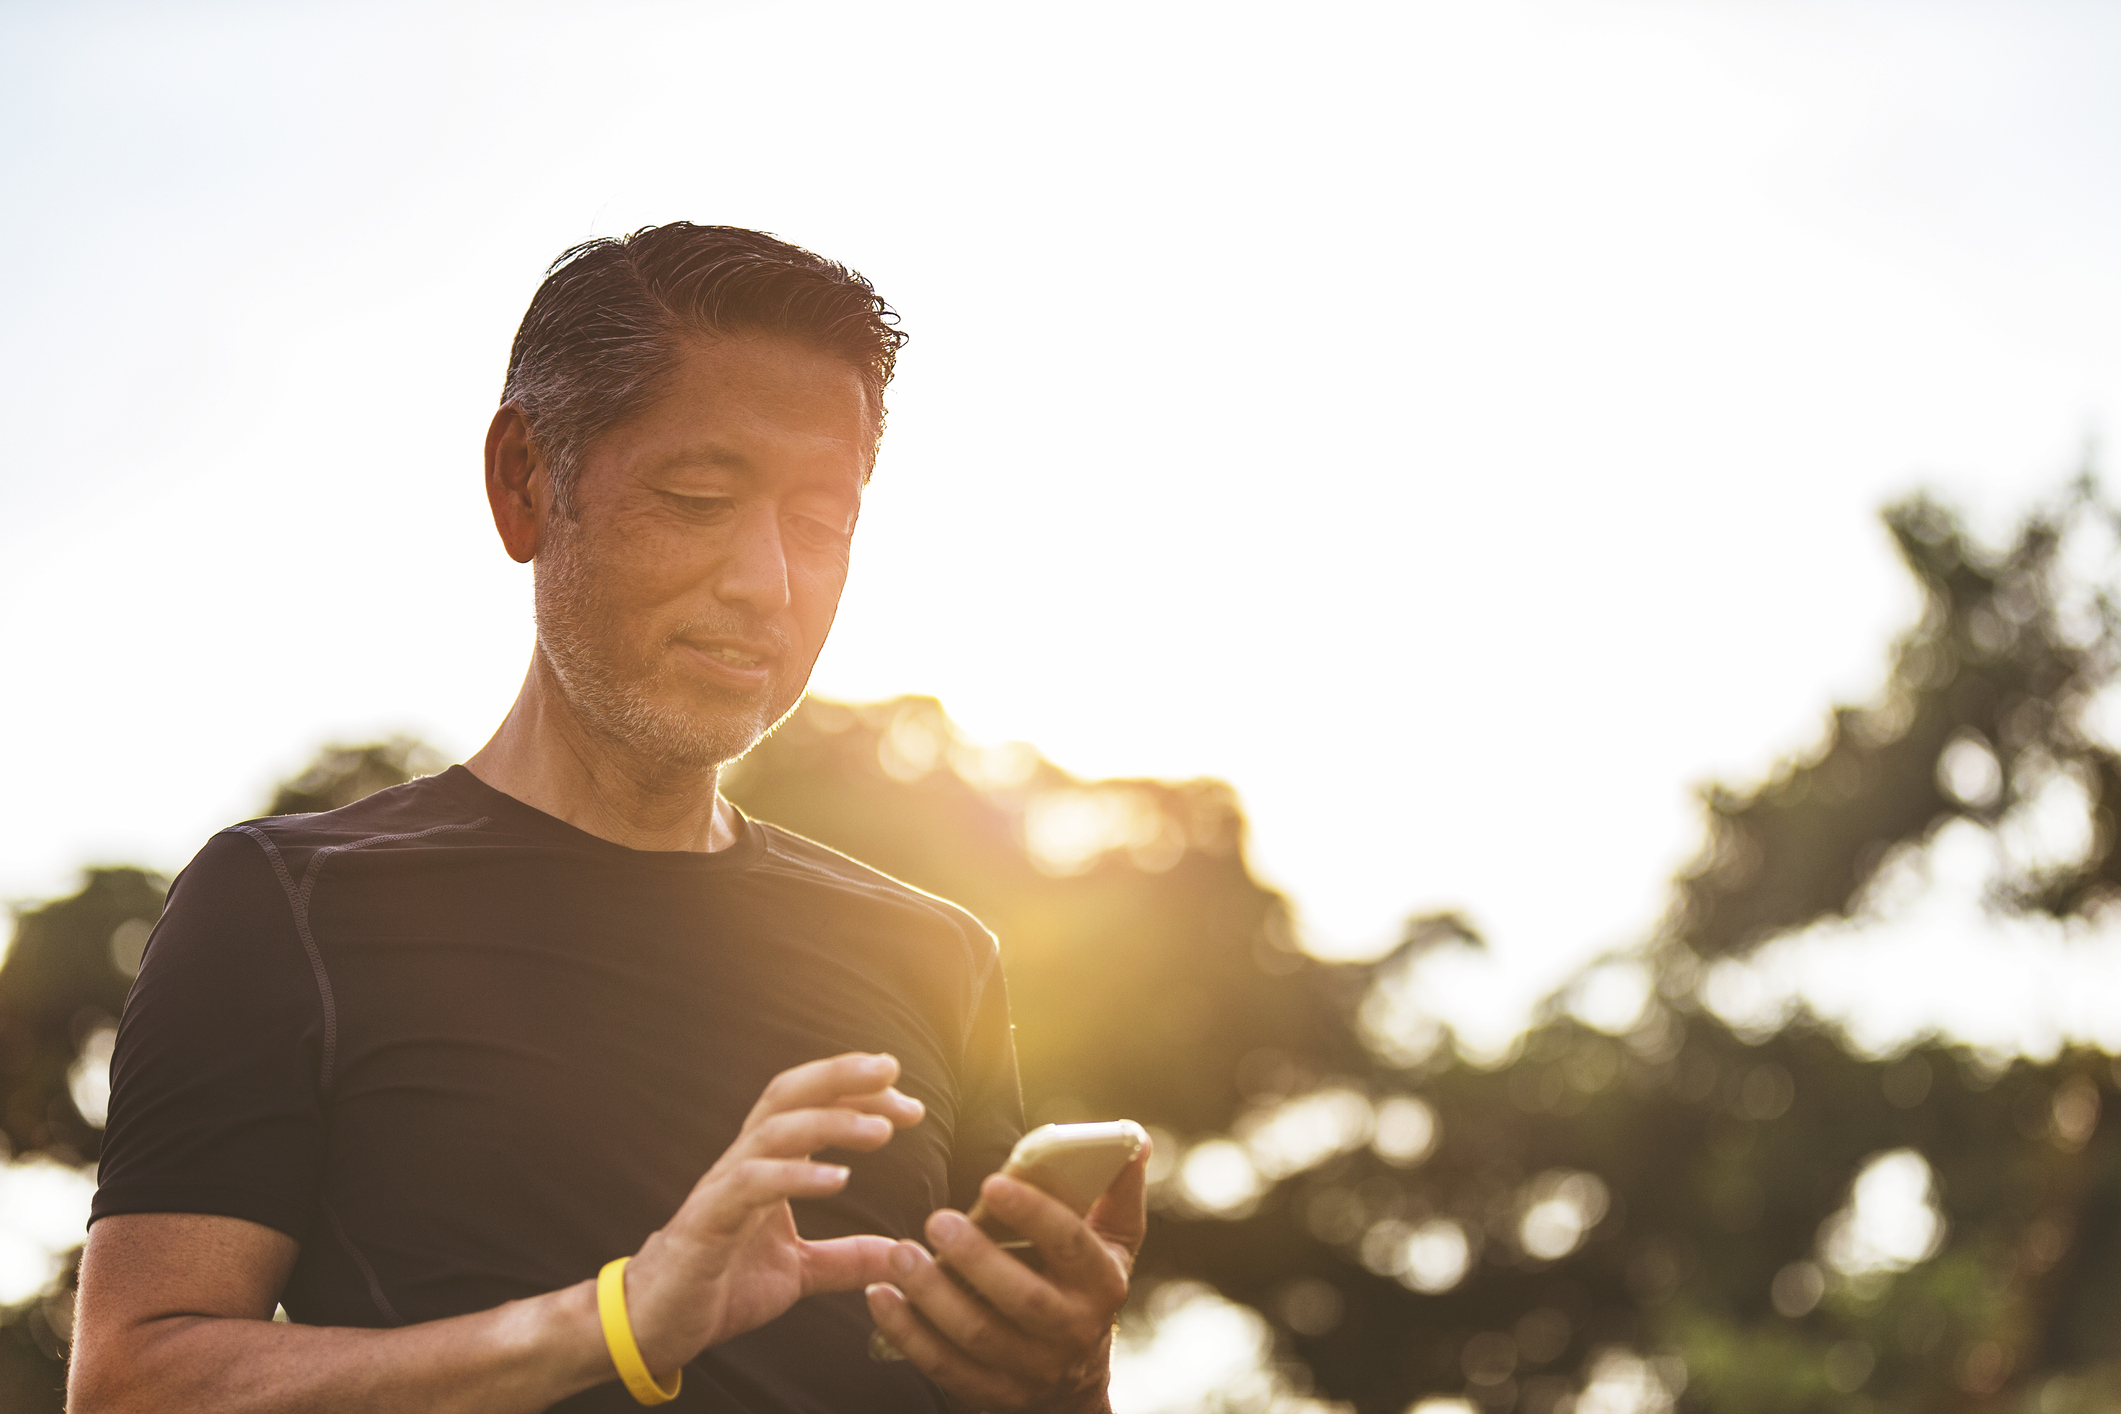 Man outdoors holding phone